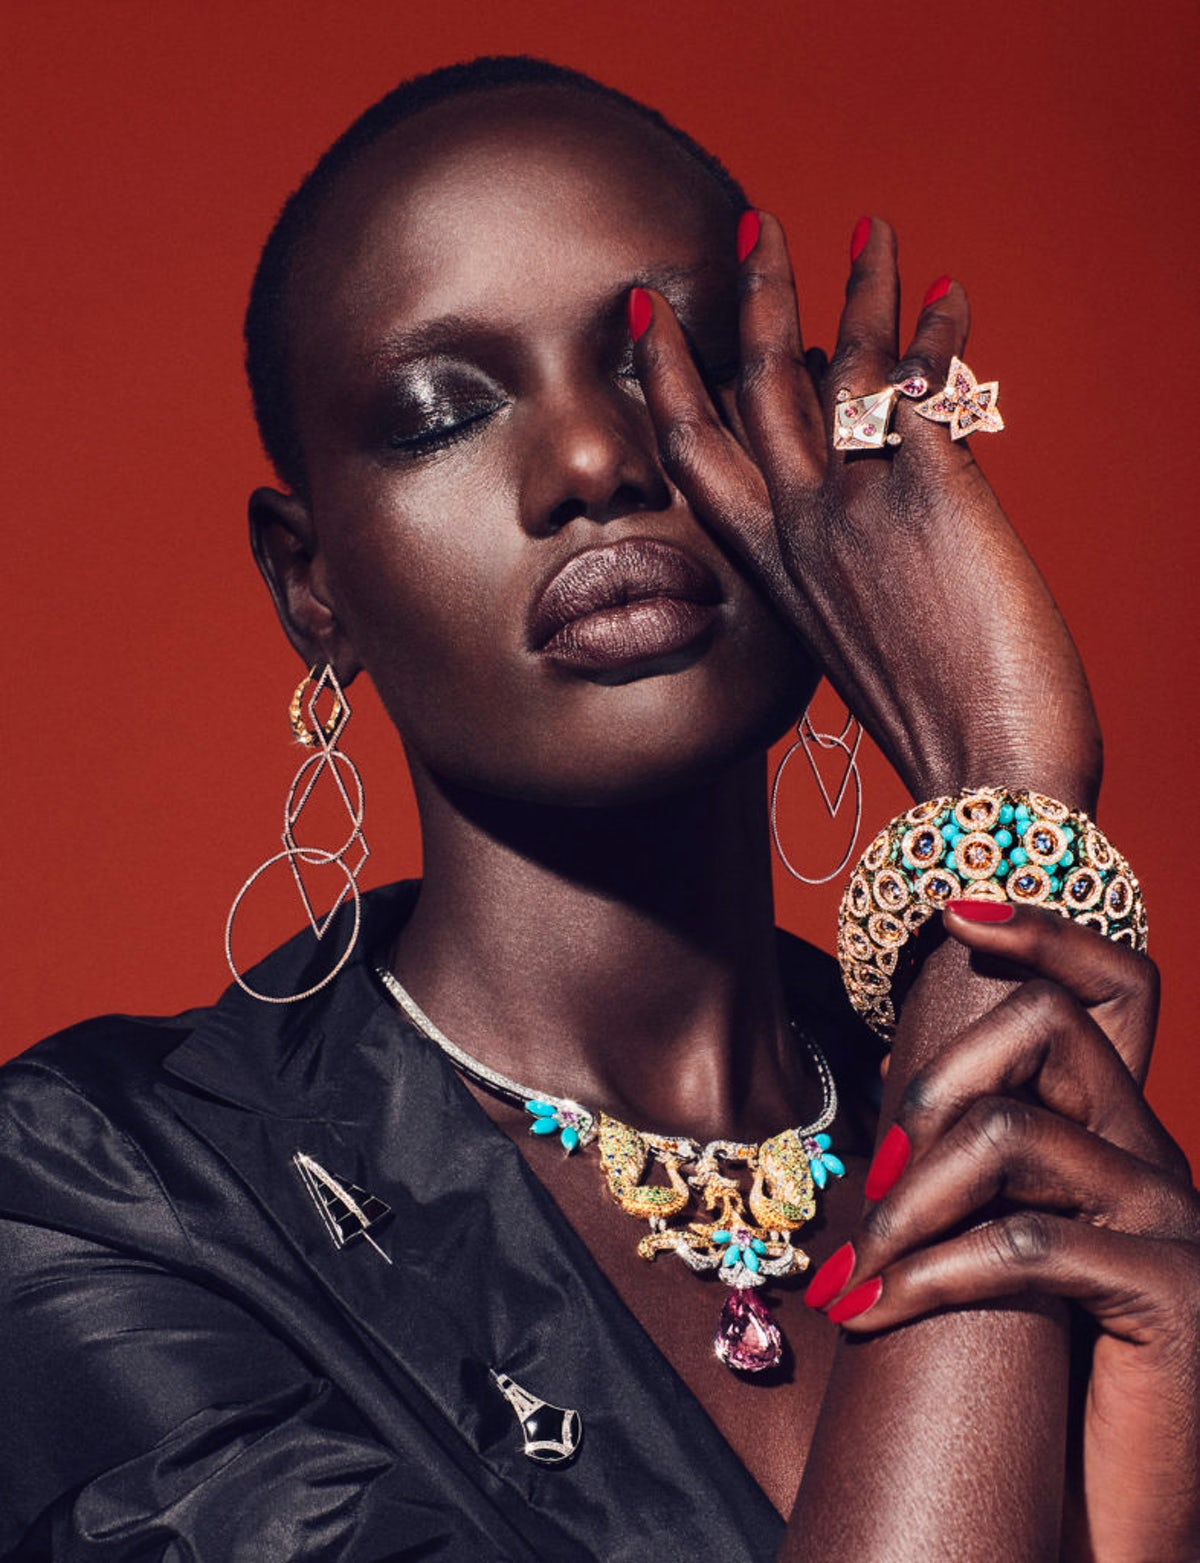 Ajak Deng from South Sudan